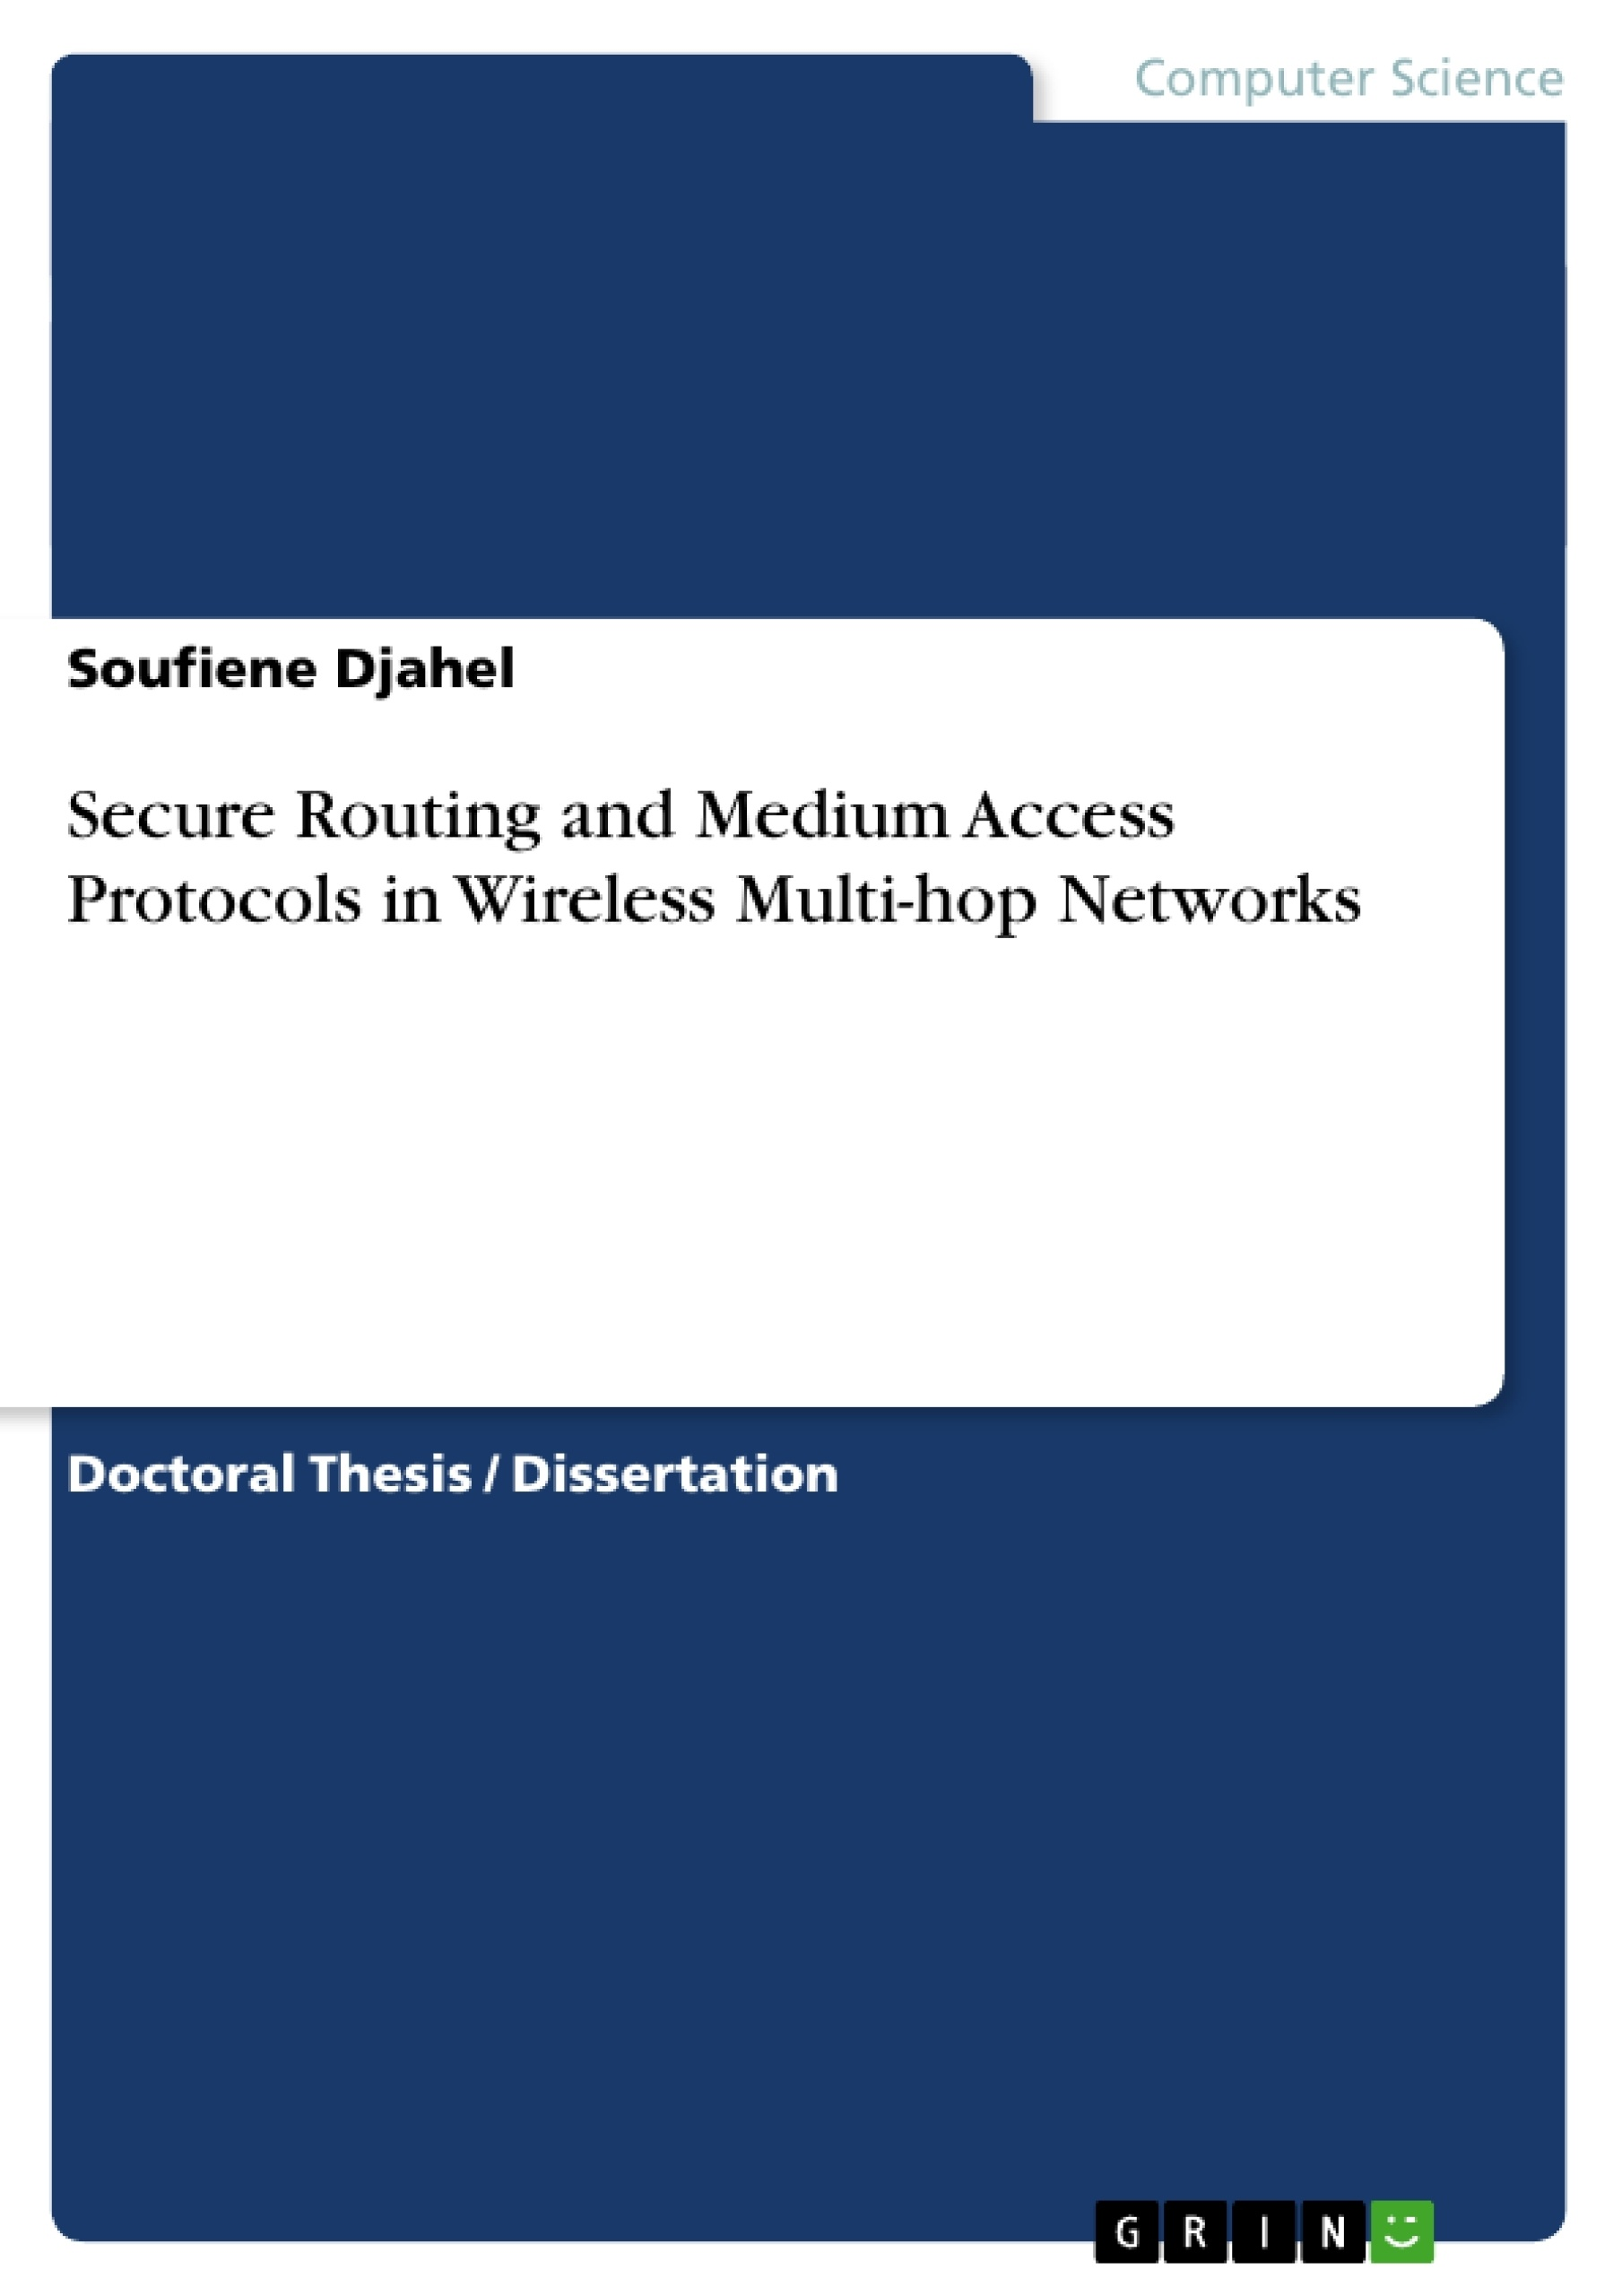 Title: Secure Routing and Medium Access Protocols in Wireless Multi-hop Networks